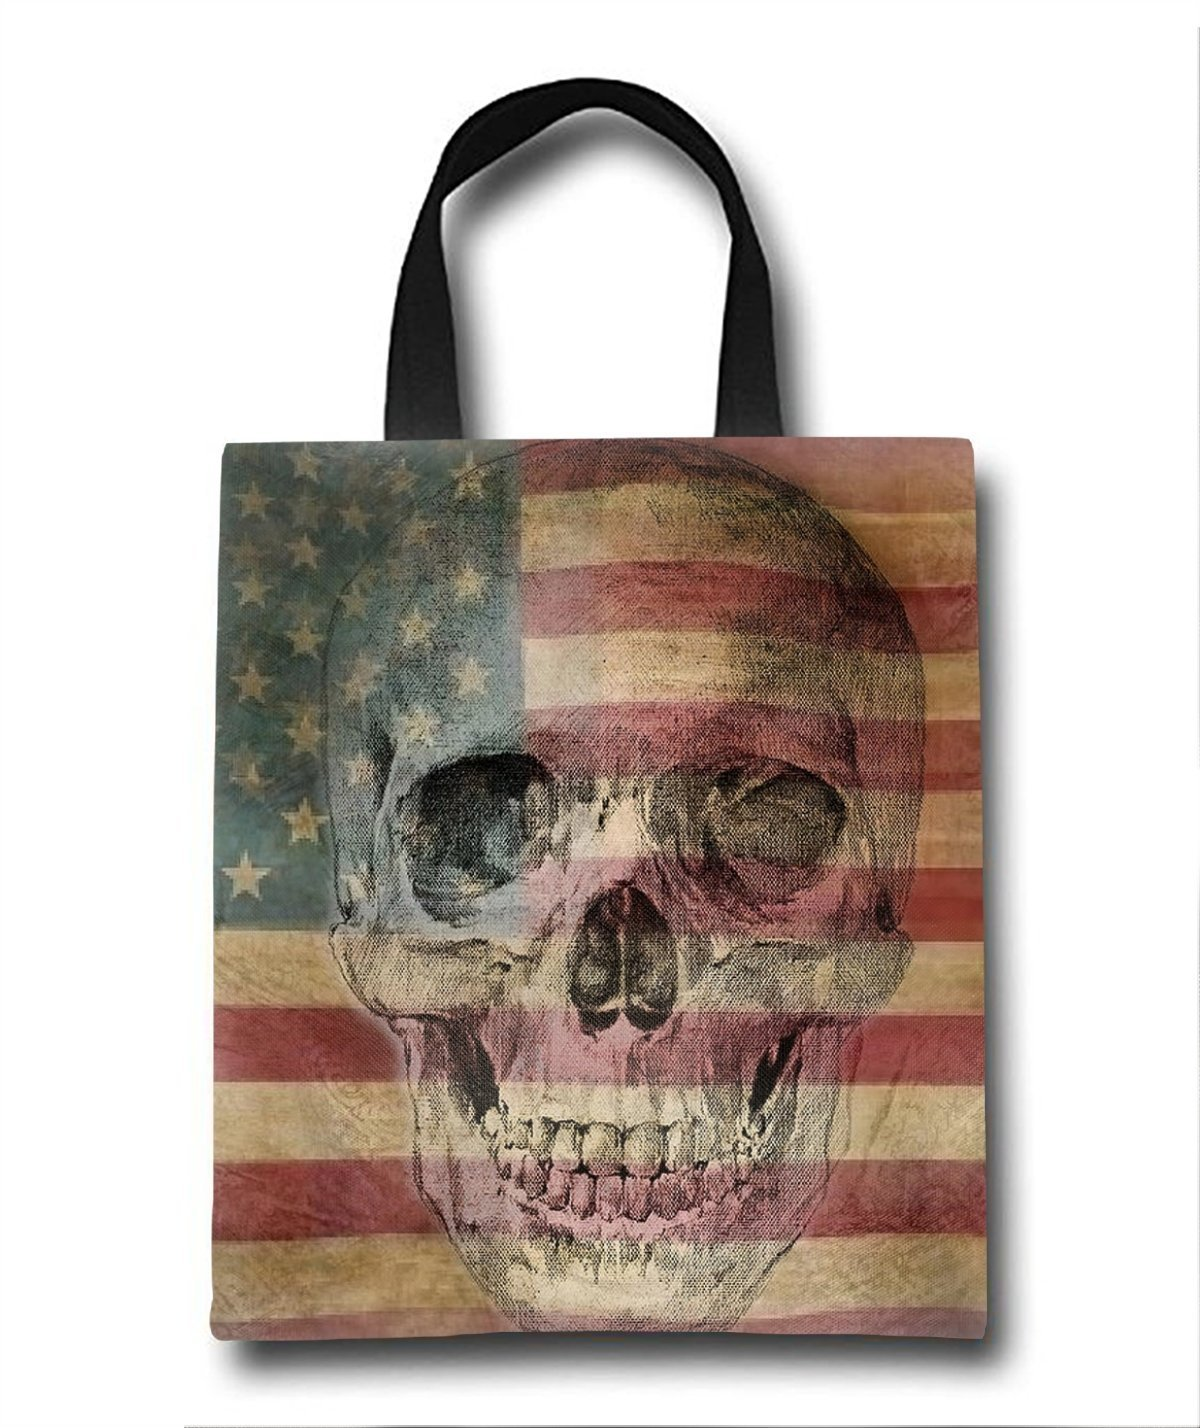 Skull On Flag Beach Tote Bag - Toy Tote Bag - Large Lightweight Market, Grocery & Picnic